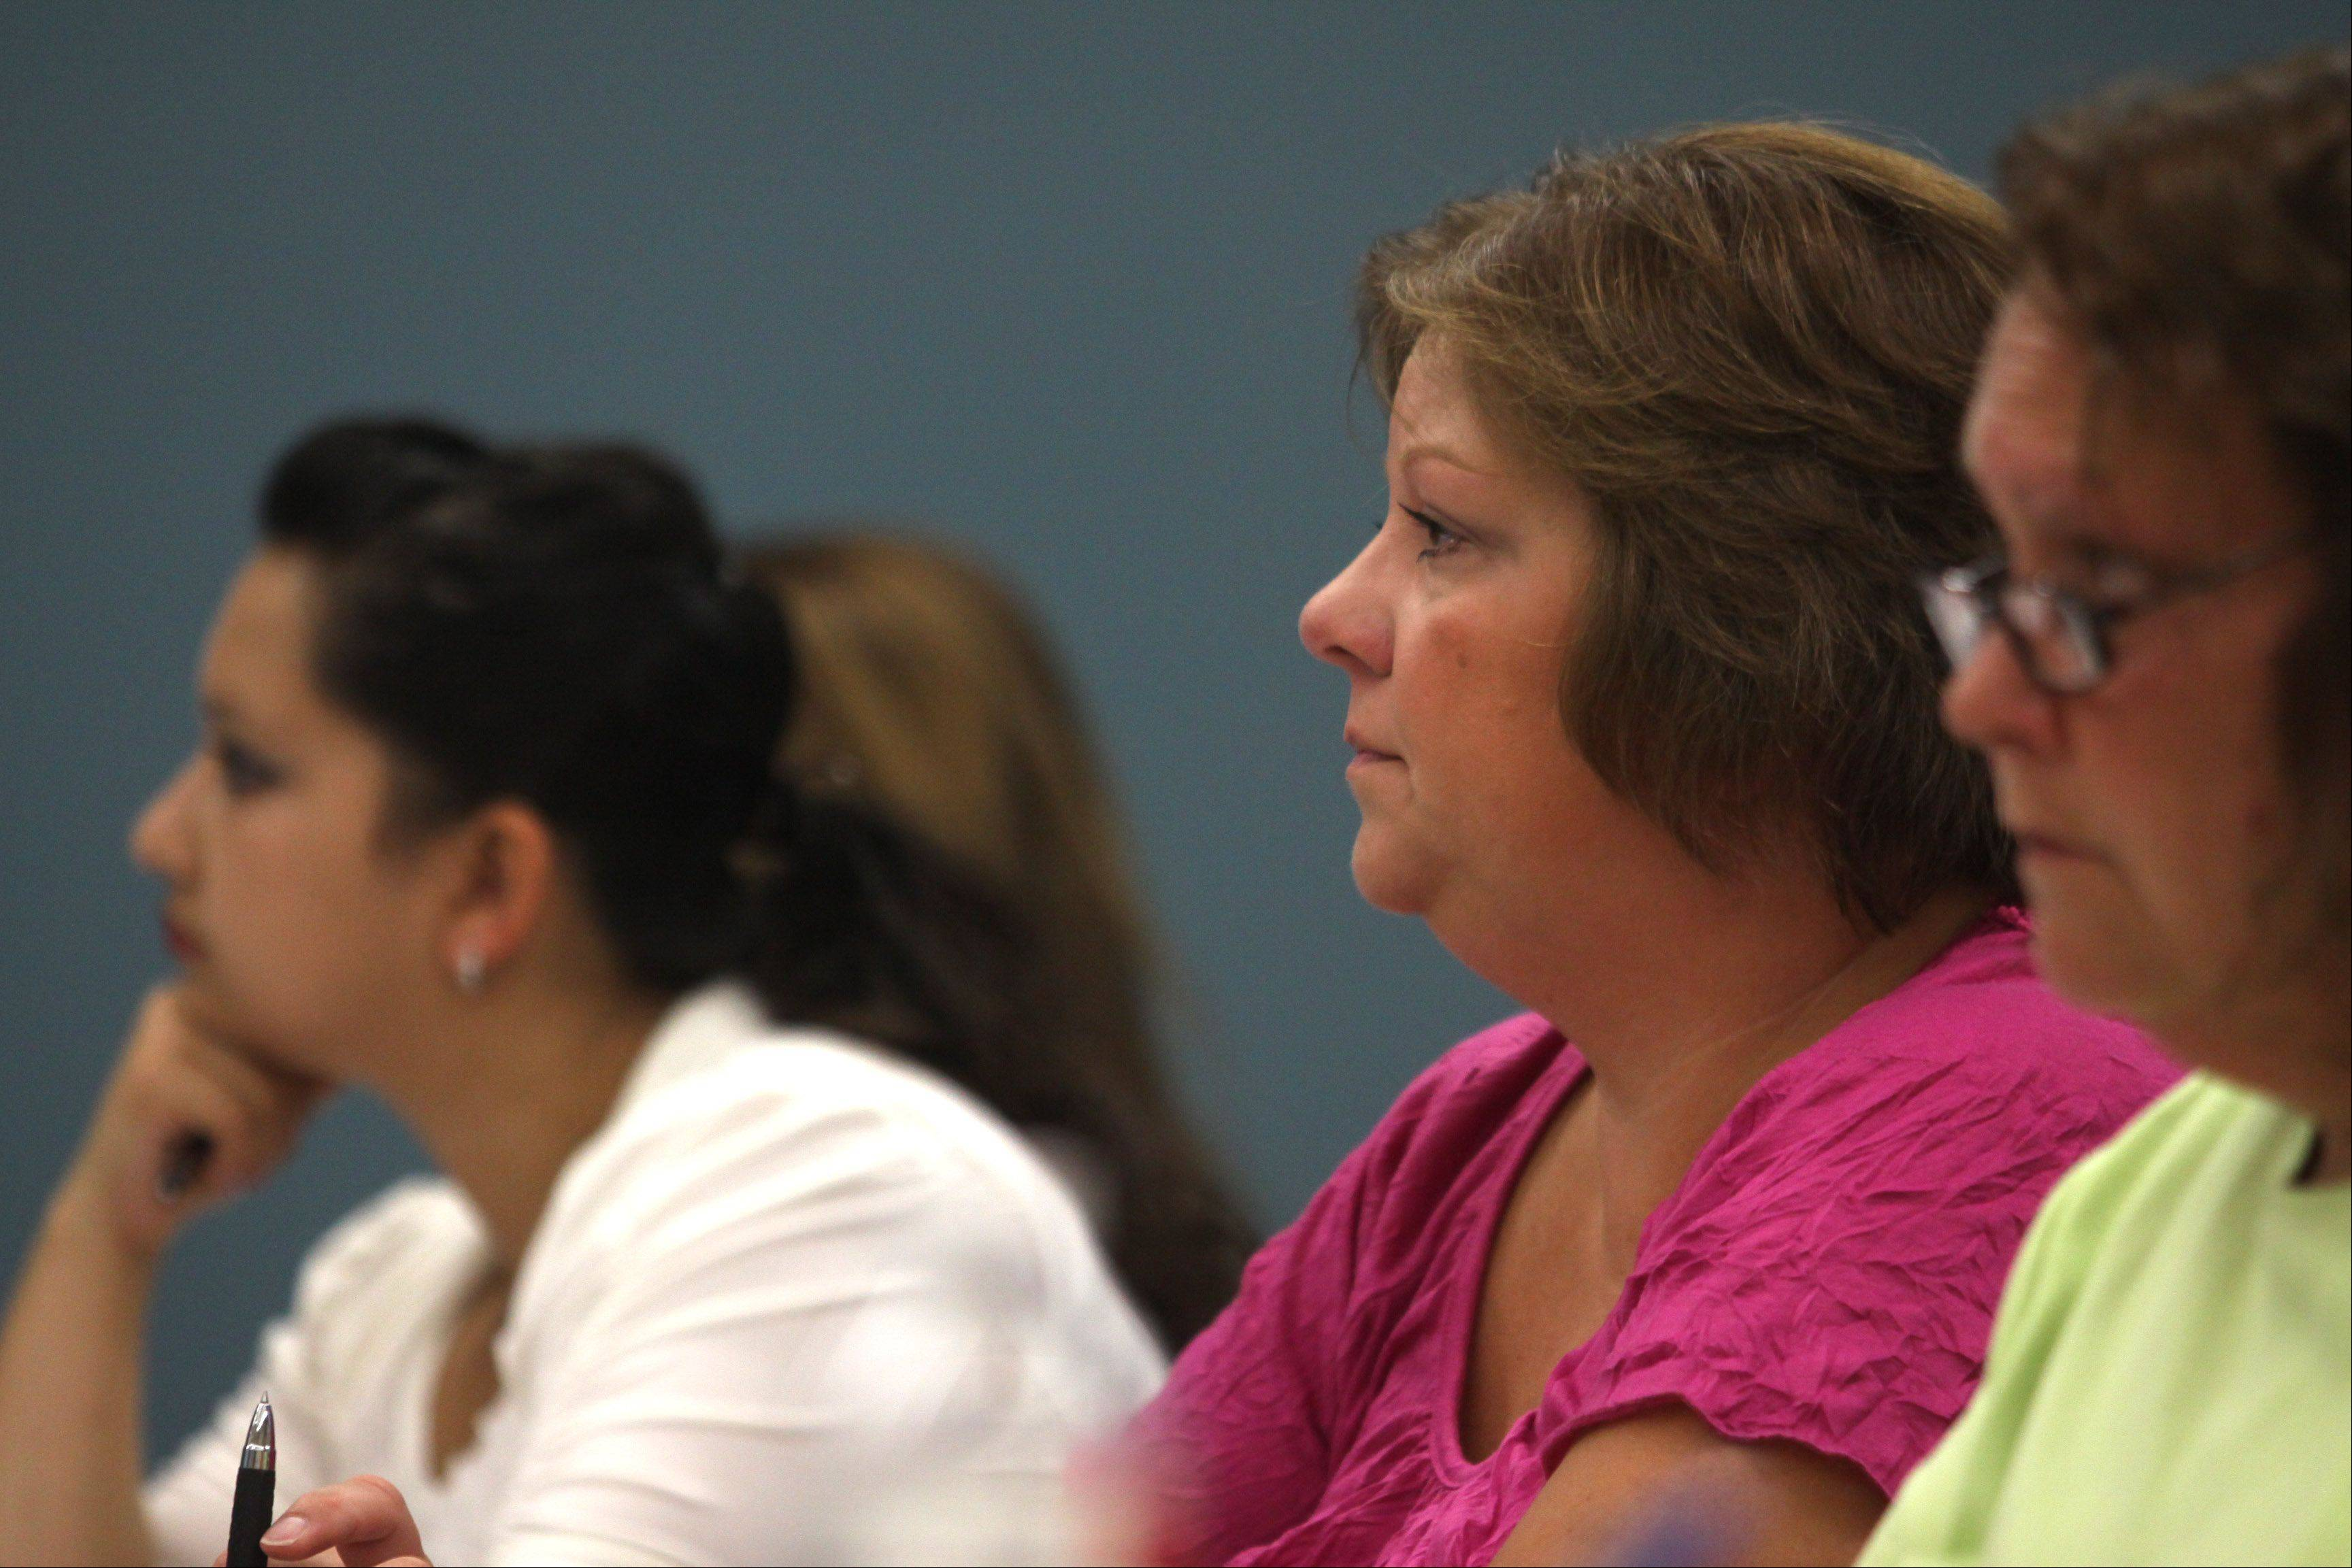 Student participates during an Elgin Community College/Columbia College of Missouri social gerontology course at ECC.